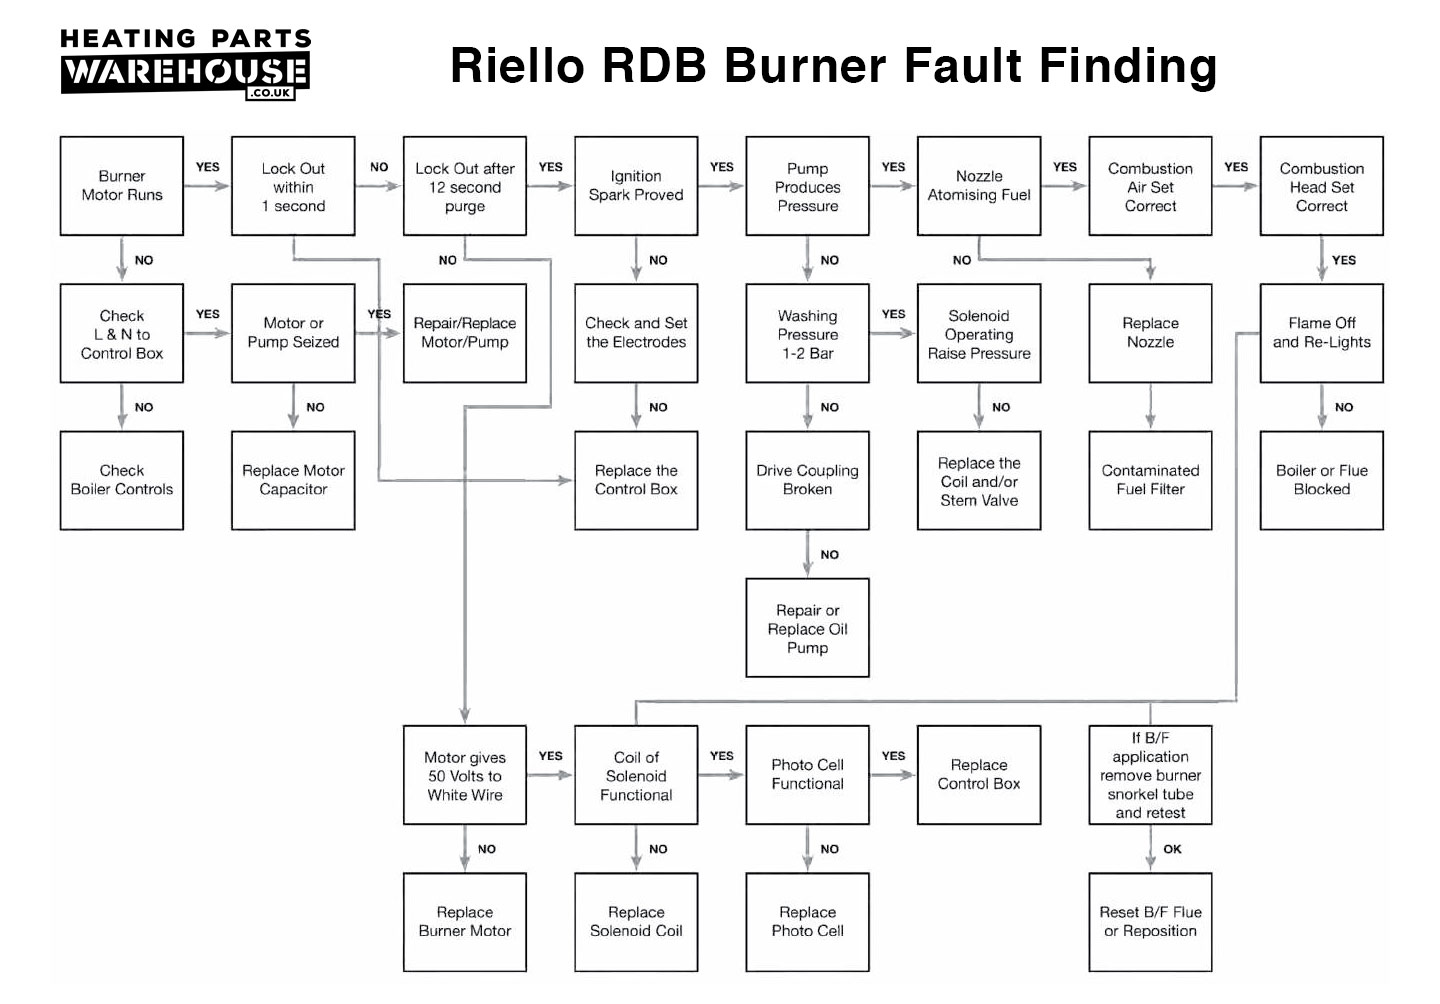 Riello RDB 2.2 Diesel Burner Fault Finding diagram